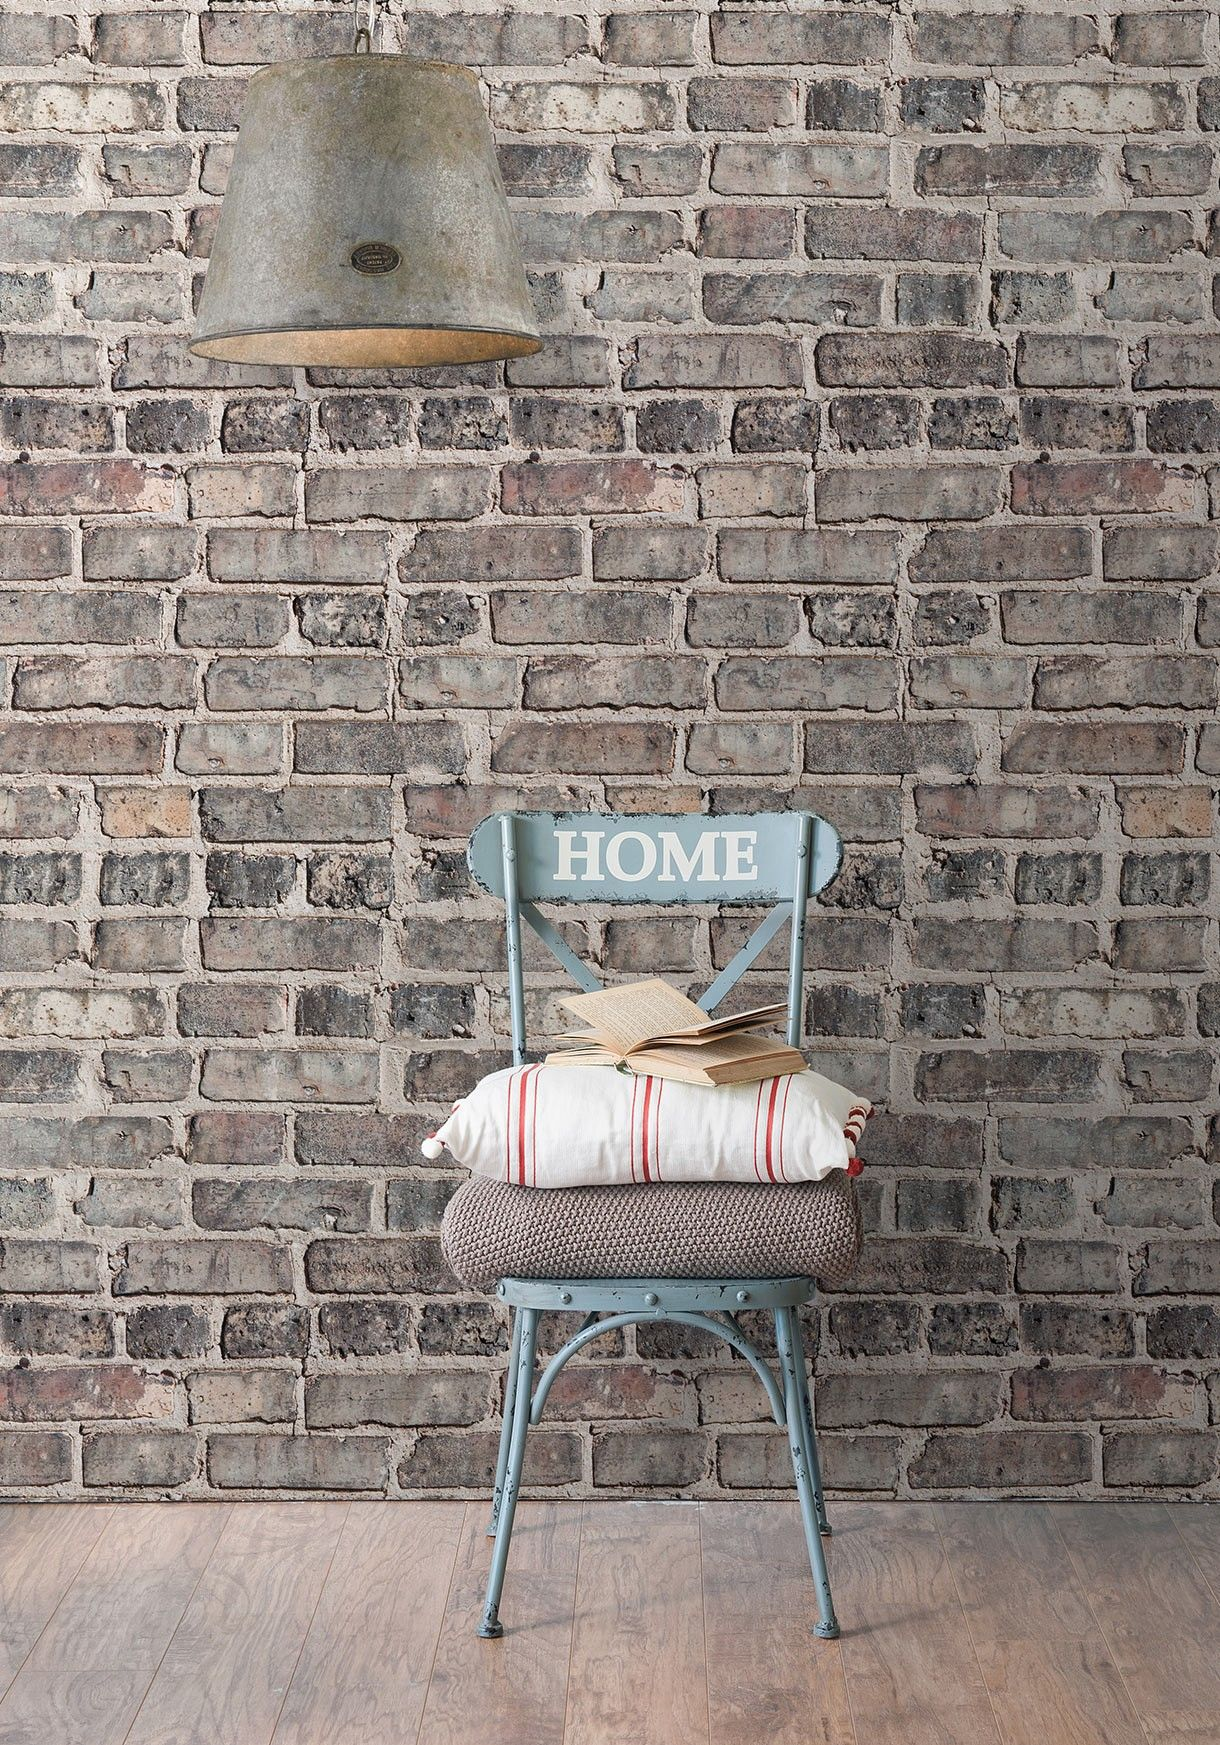 Realistic Exposed Brick Wallpapers Milton King Exposed Brick Wallpaper Faux Brick Walls Faux Brick